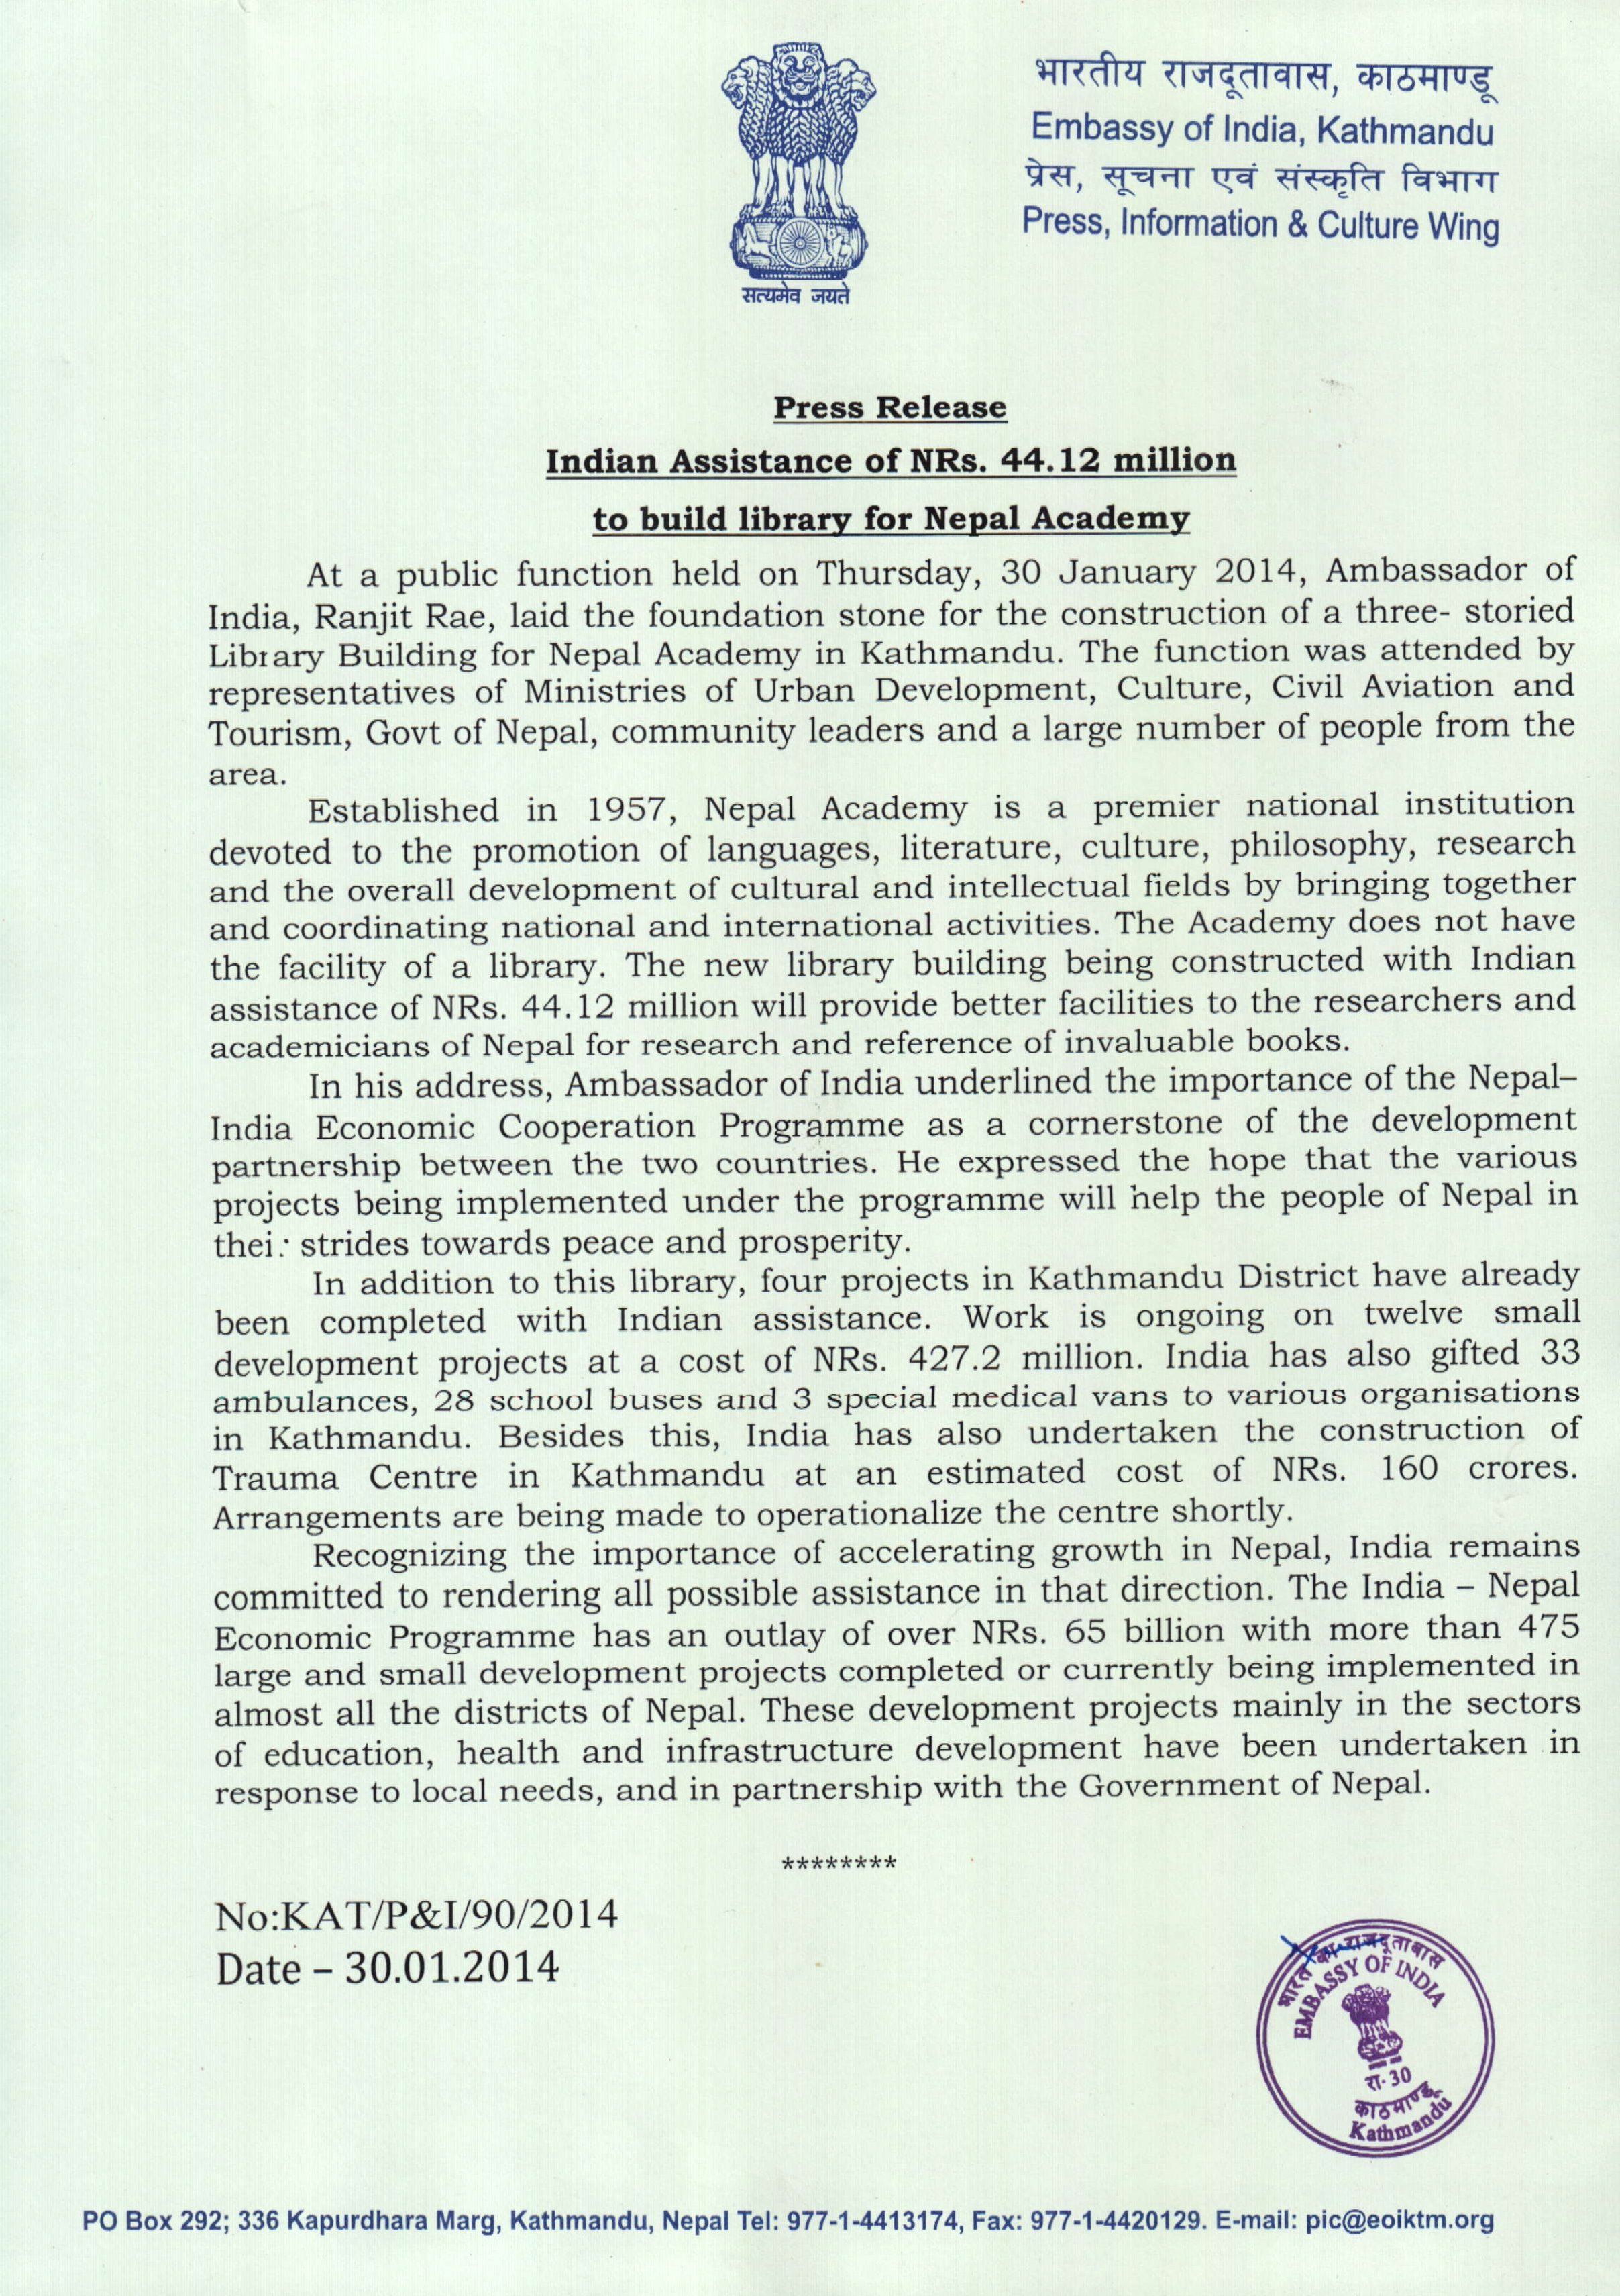 Mea indian missions abroad indian mission 4412 million for nepal academy falaconquin